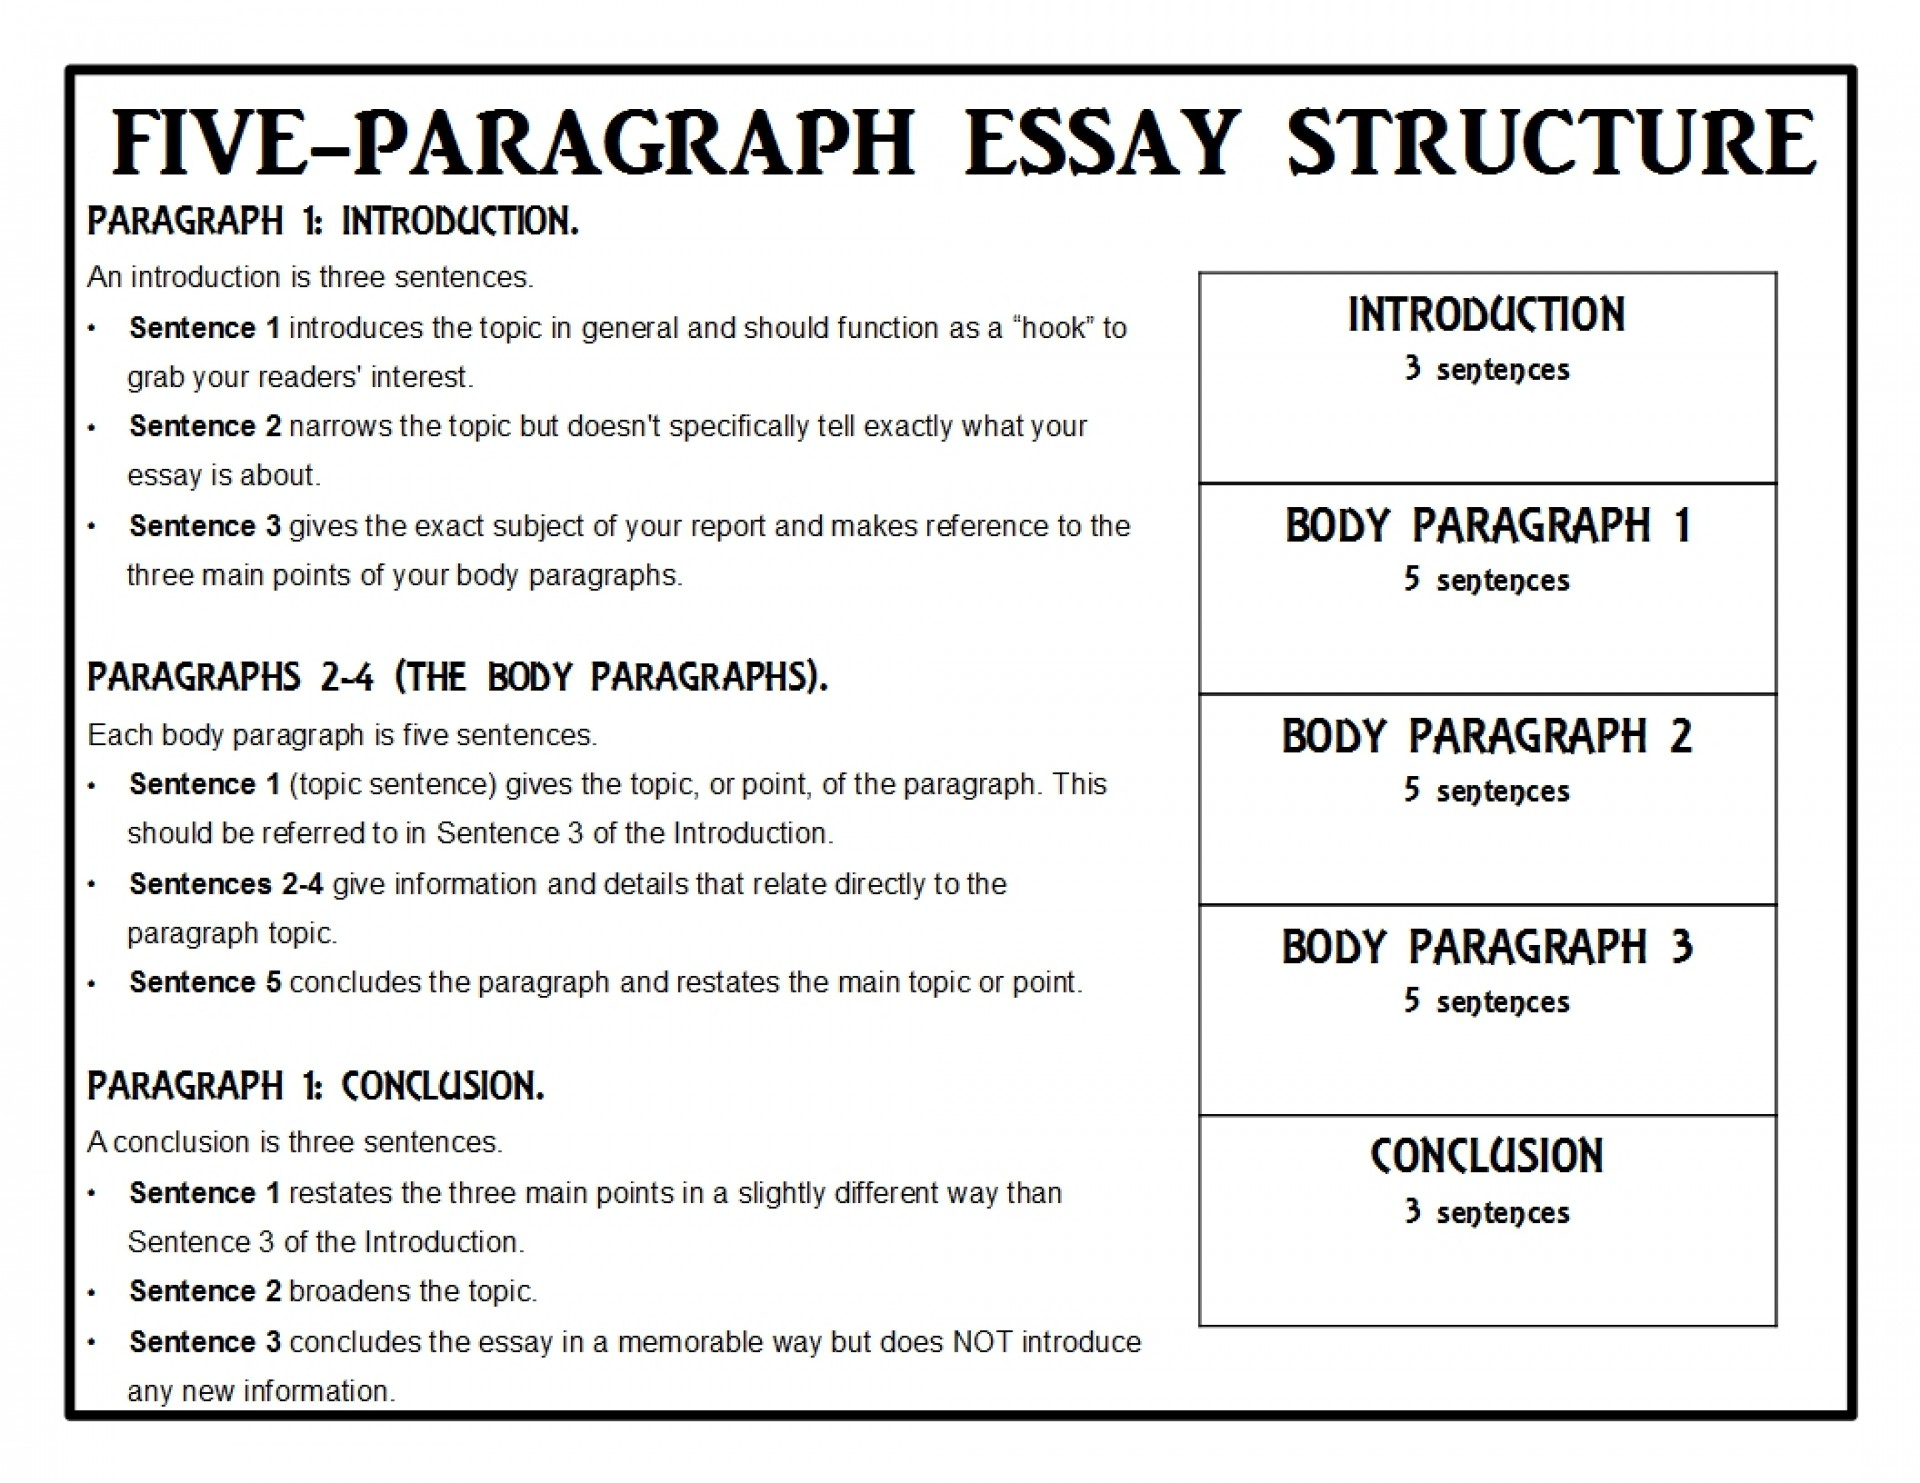 015 Animalreport1 Paragraph Essay Singular 5 Template Graphic Organizer Middle School Pdf College 1920